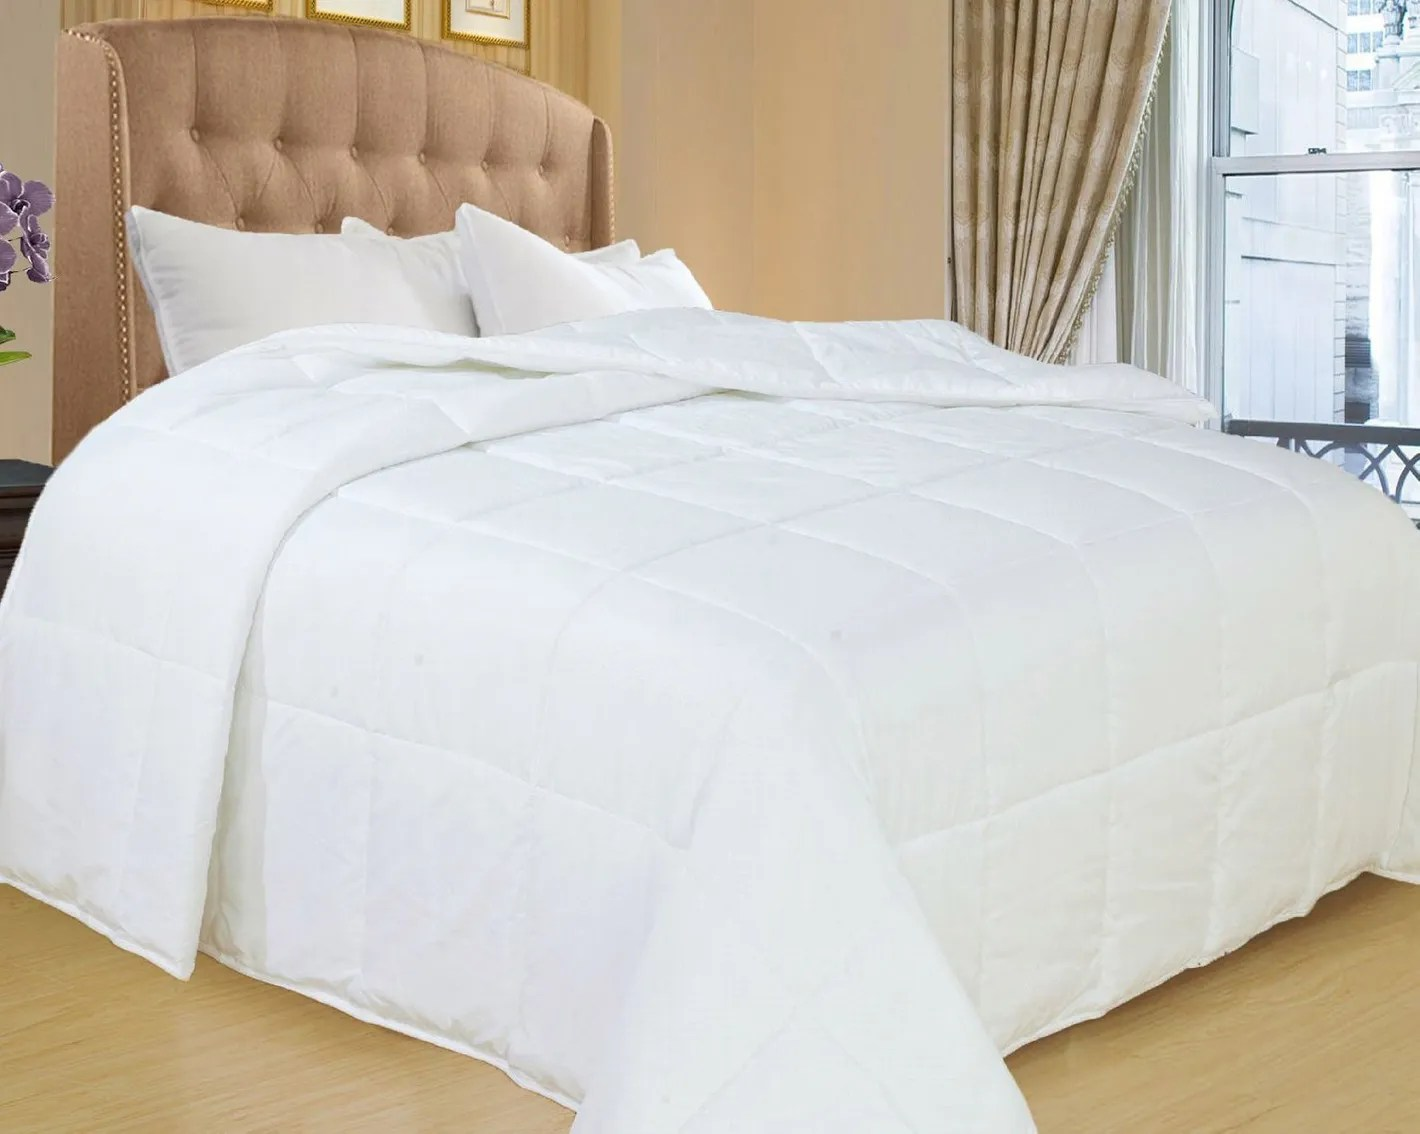 Duvet Covers And Comforters Natural Comfort White Down Alternative Comforter With Embossed Microfiber Shell